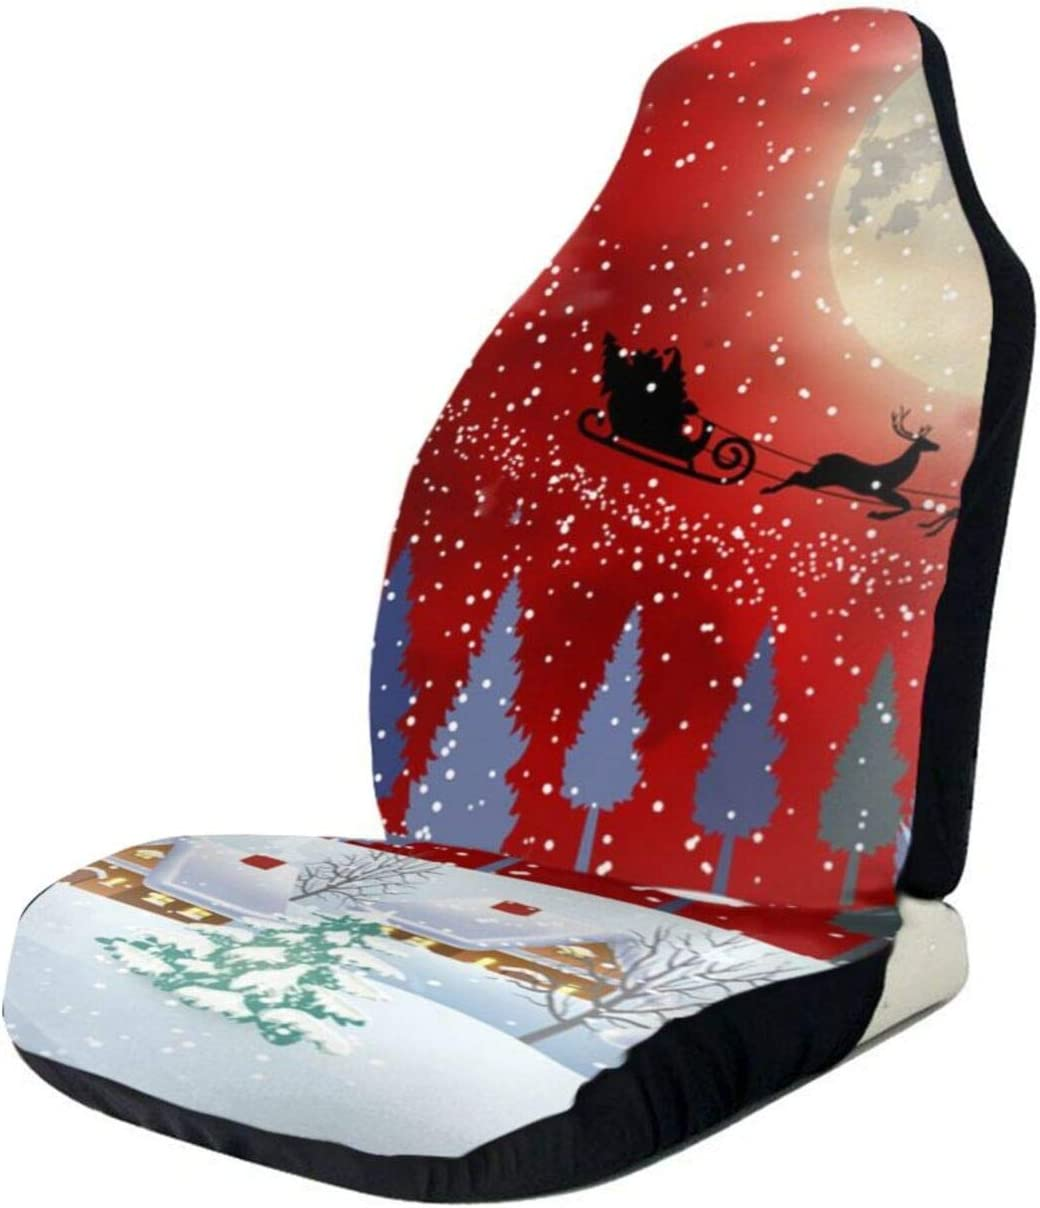 Large-scale sale Ranking integrated 1st place Christmas Snowman Tree Grunge Car Seat Cover Front Only Seats Fu